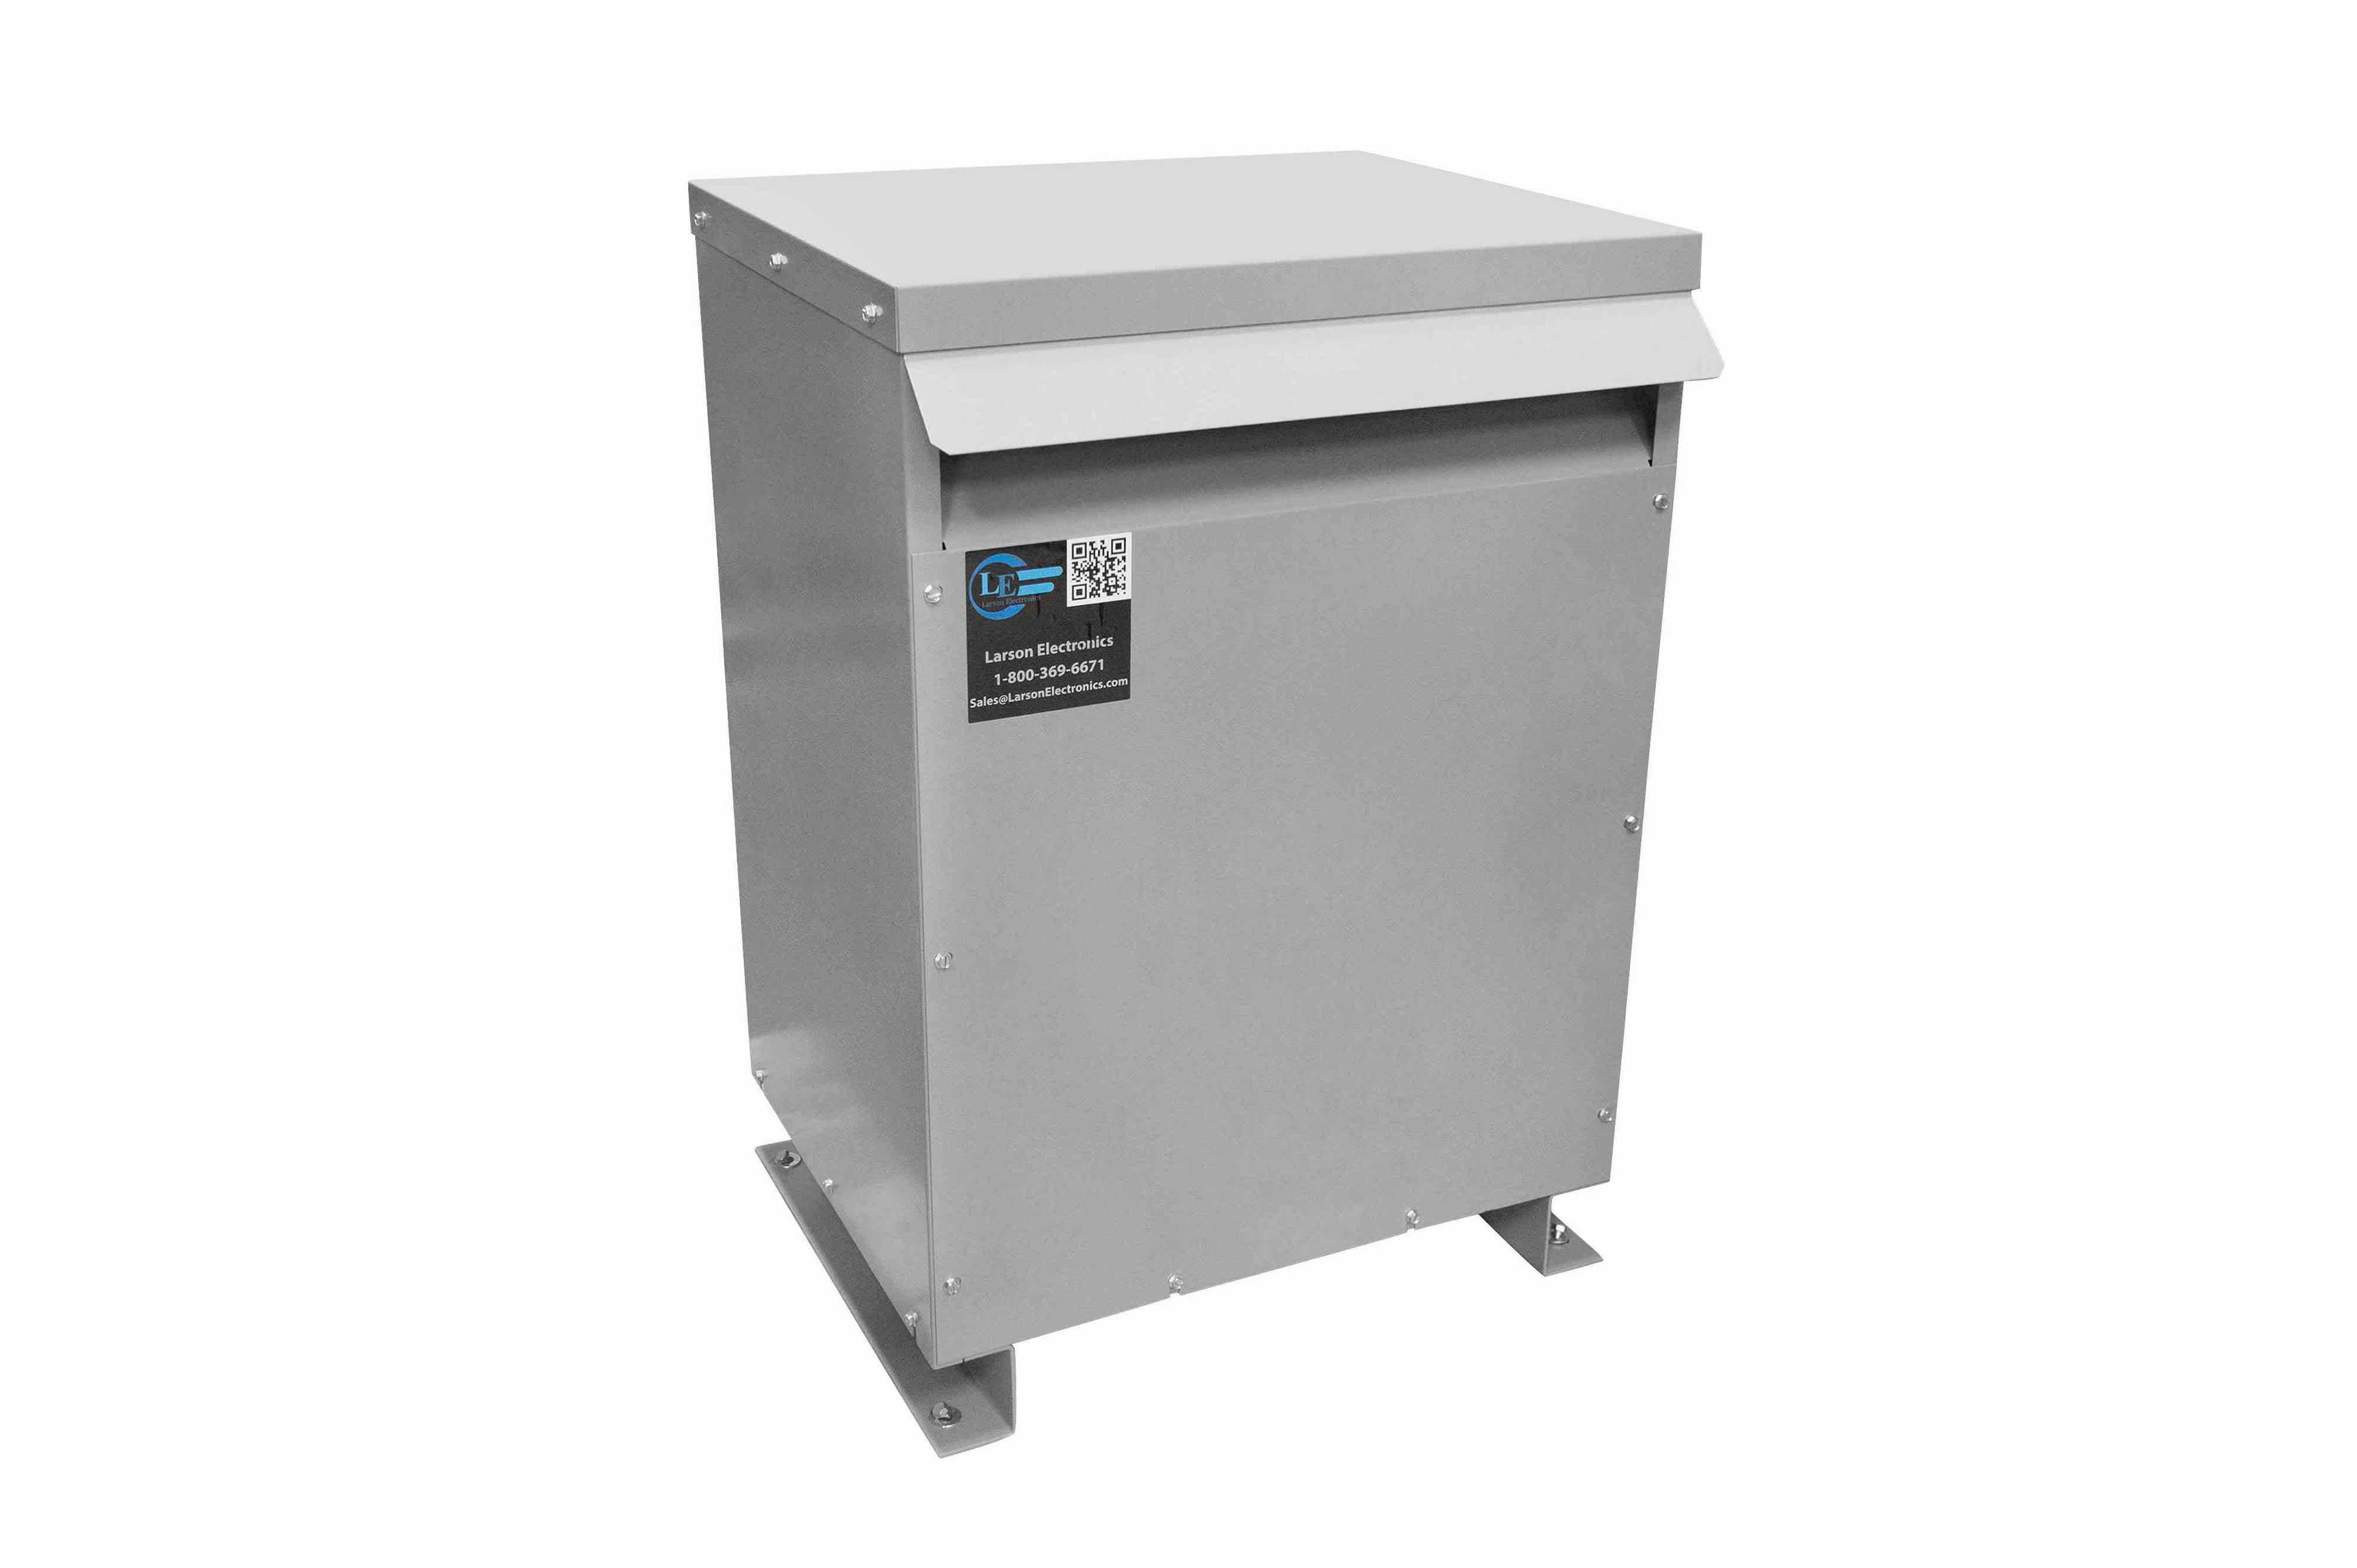 70 kVA 3PH Isolation Transformer, 240V Delta Primary, 415V Delta Secondary, N3R, Ventilated, 60 Hz